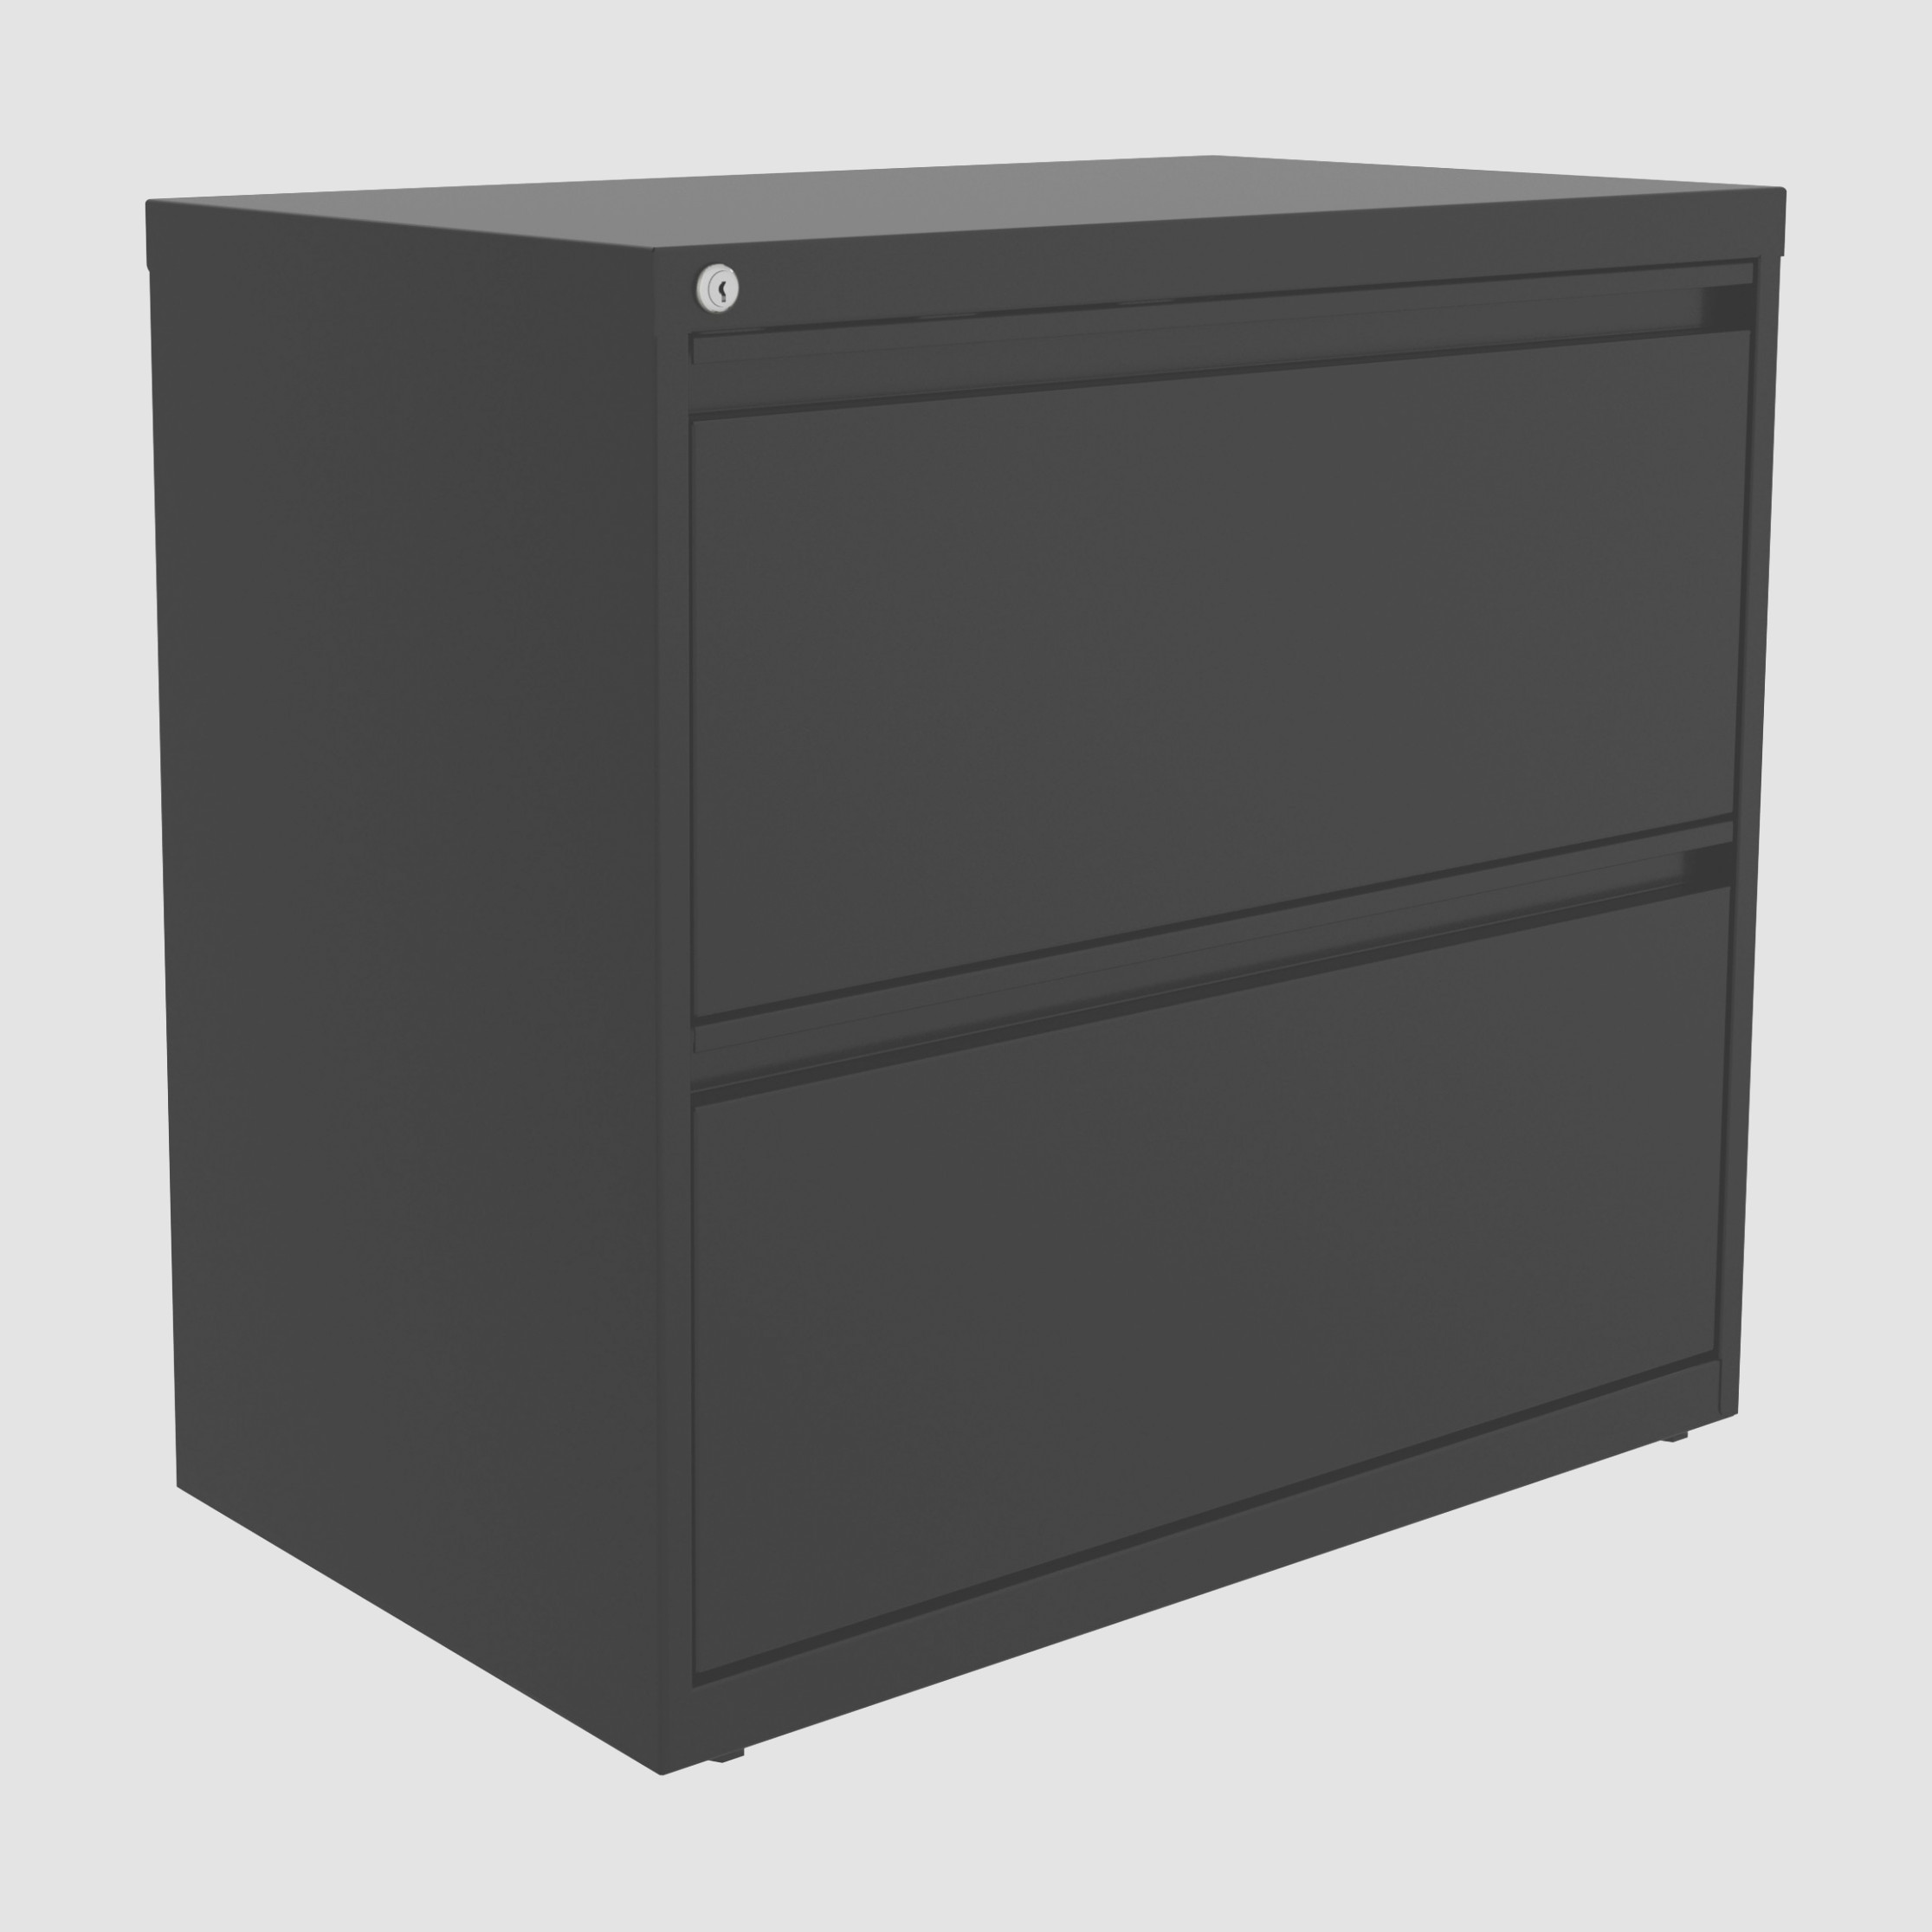 1 Inch Wide Lateral File Cabinet